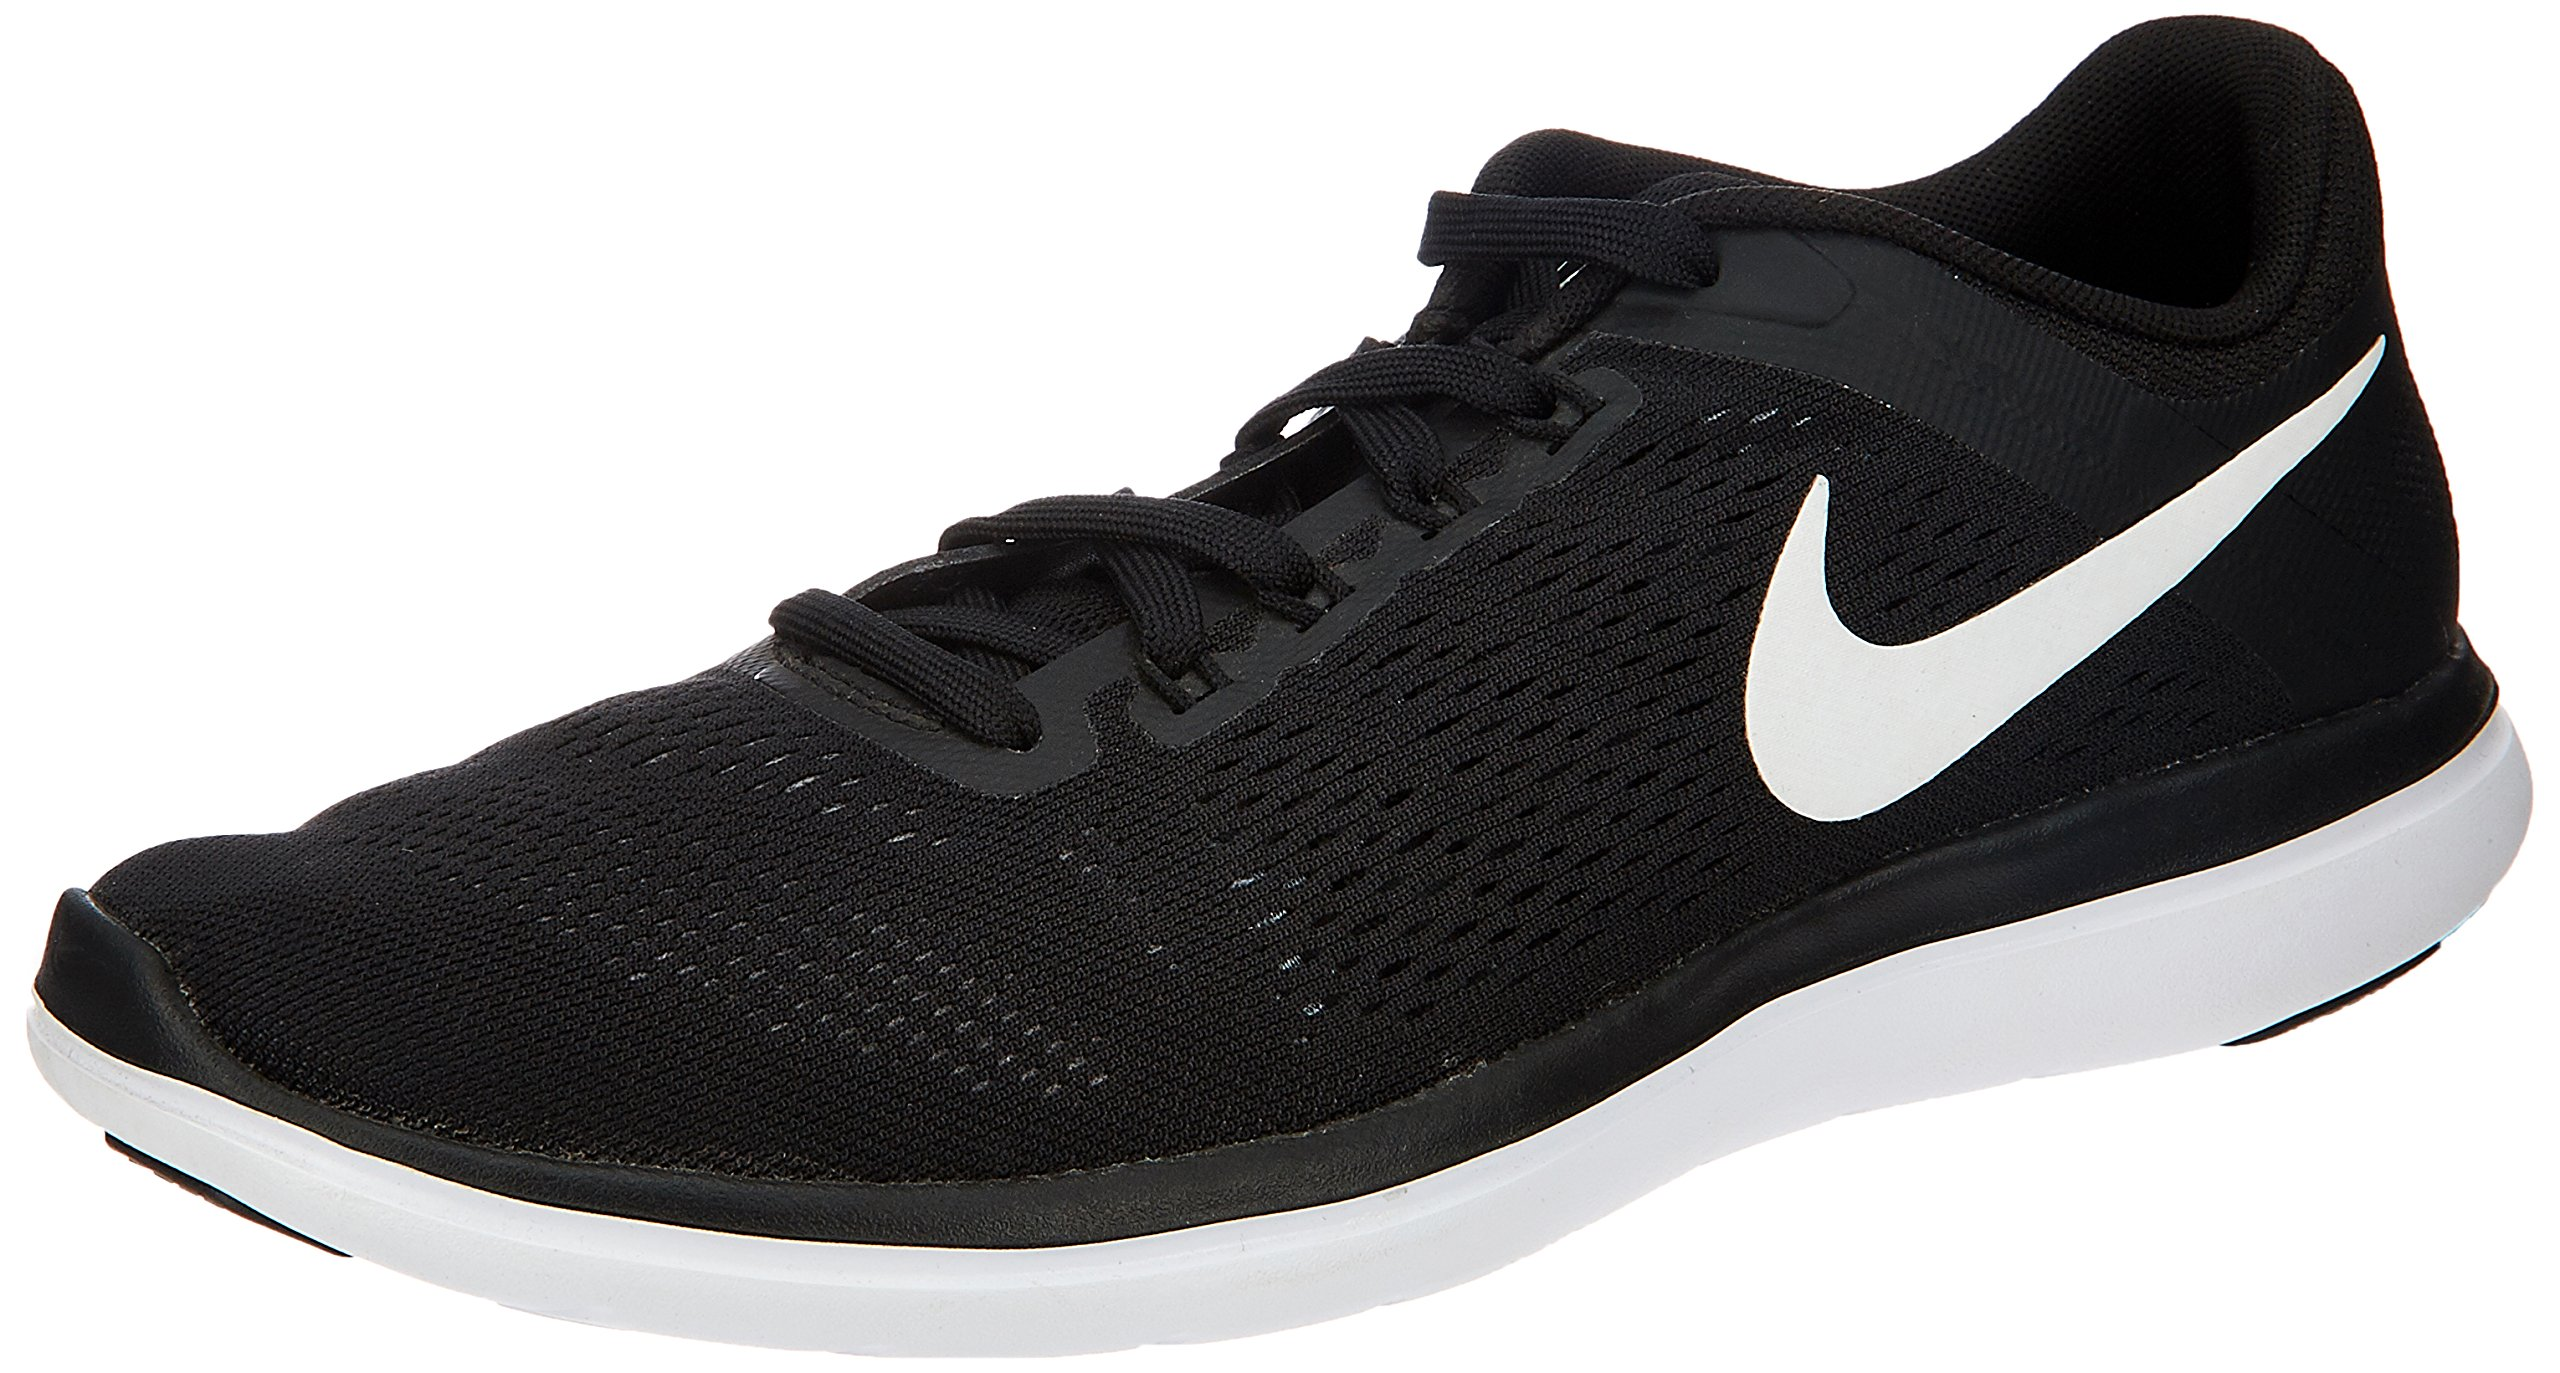 Nike Men's Flex 2016 RN Running Shoe Black/Cool Grey/White Size 15 M US